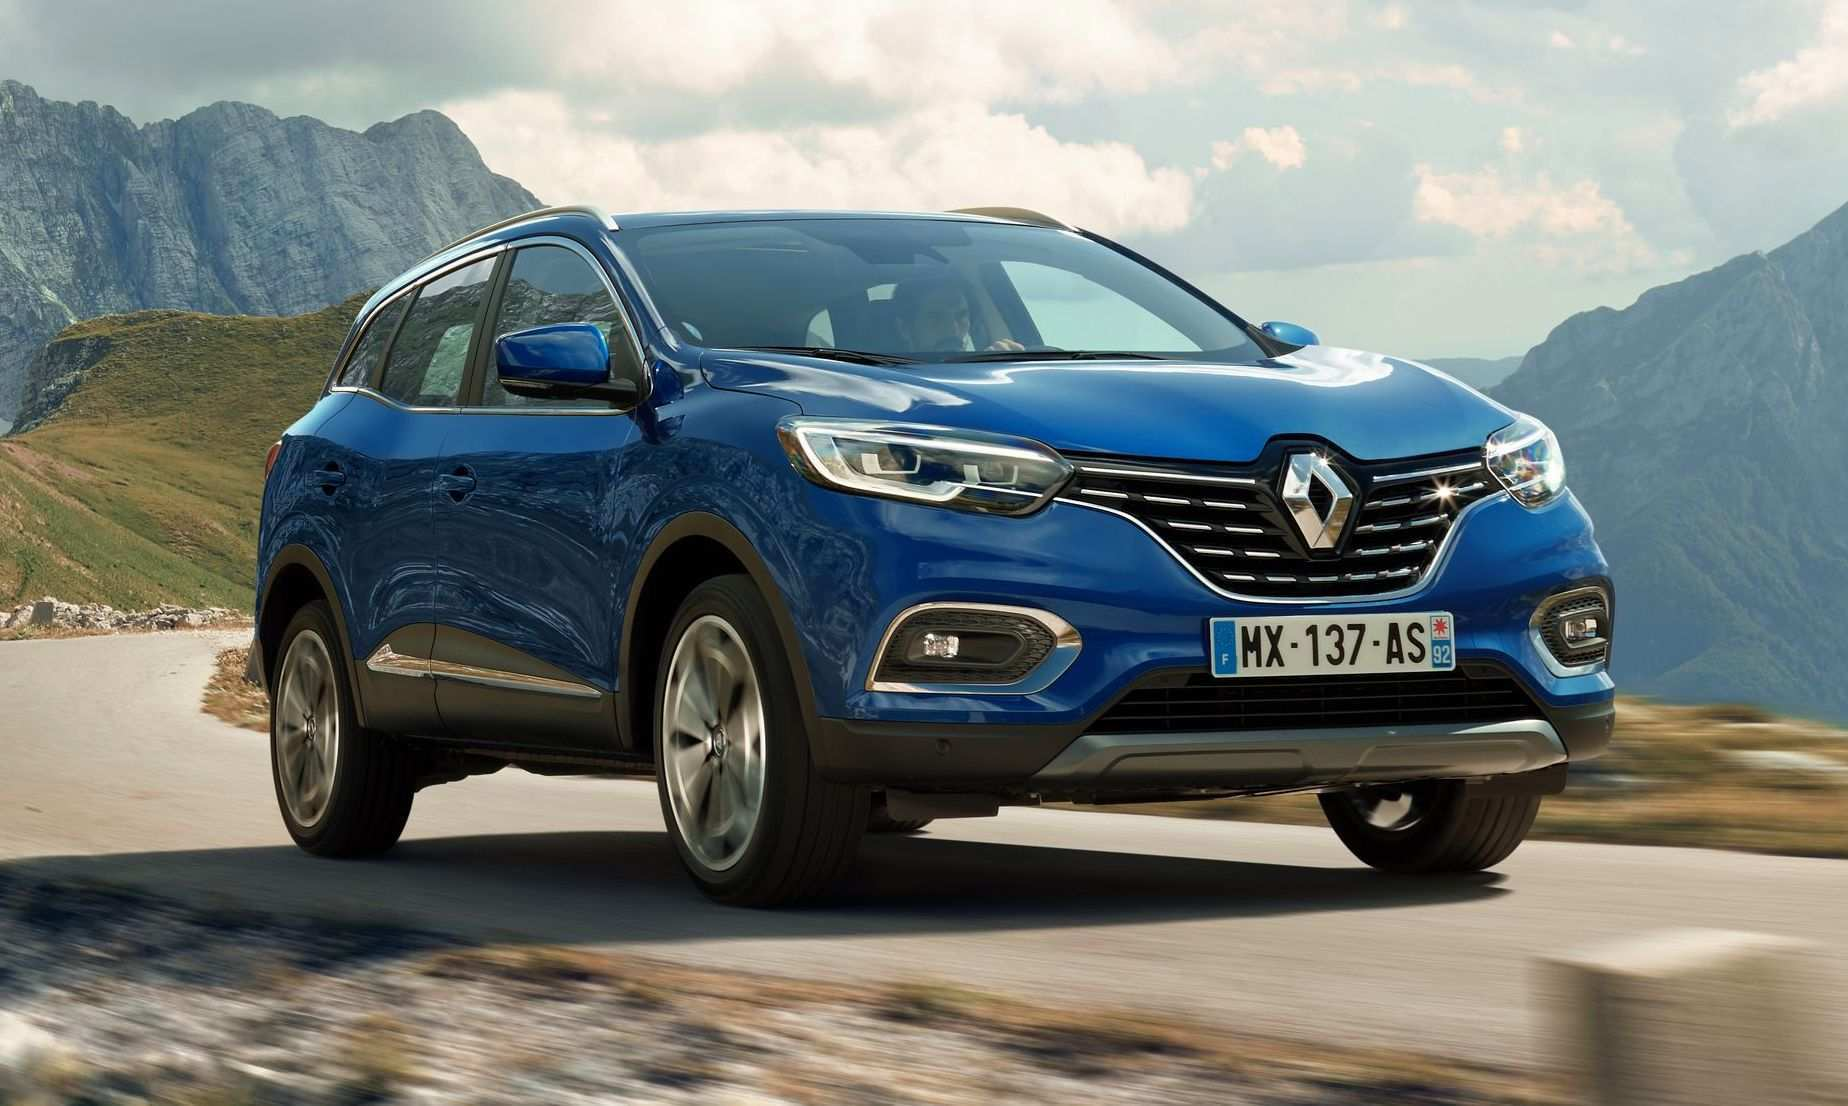 89 Gallery of 2019 Renault Kadjar Wallpaper with 2019 Renault Kadjar